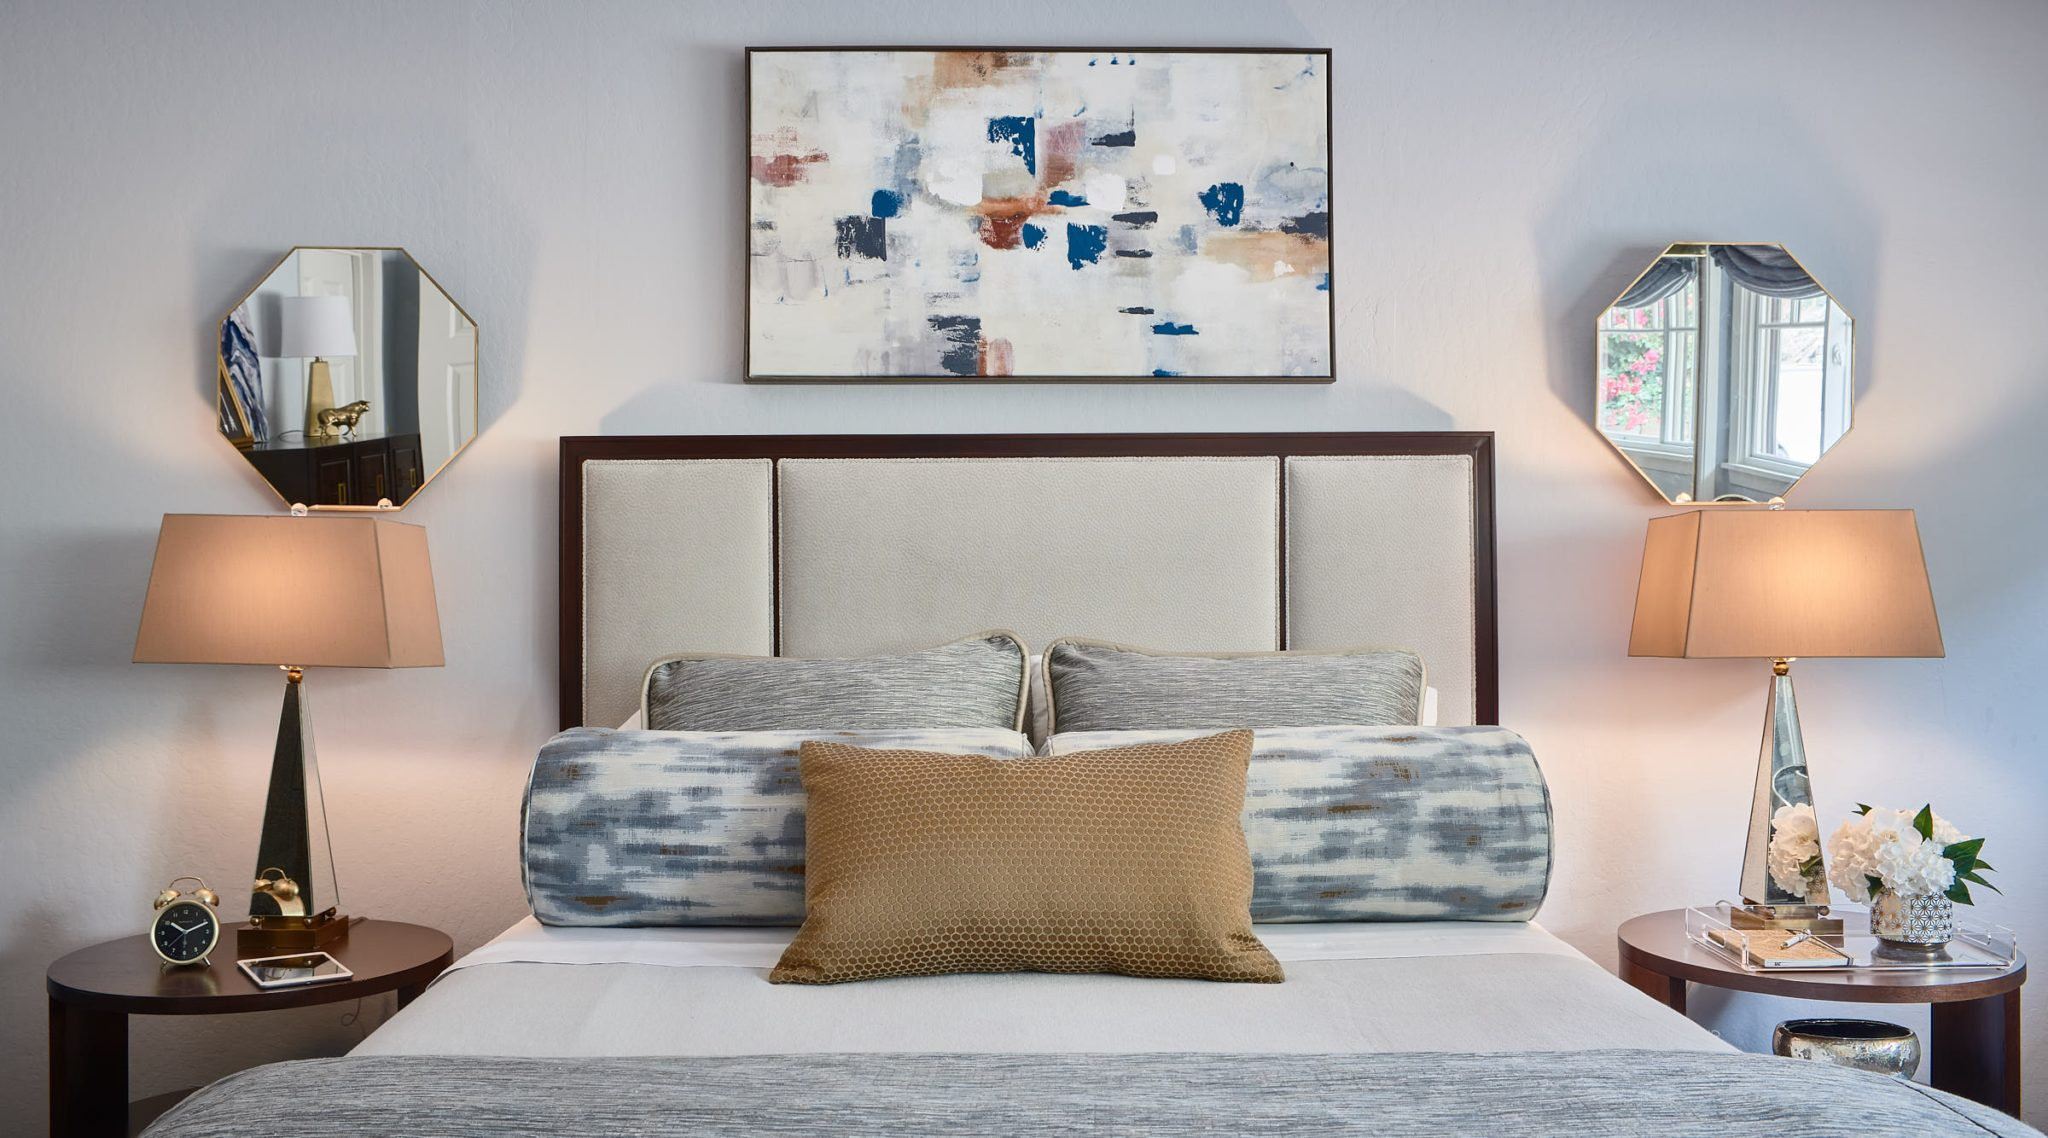 San Carlos Transitional Bedroom by Sabrina Alfin Interiors